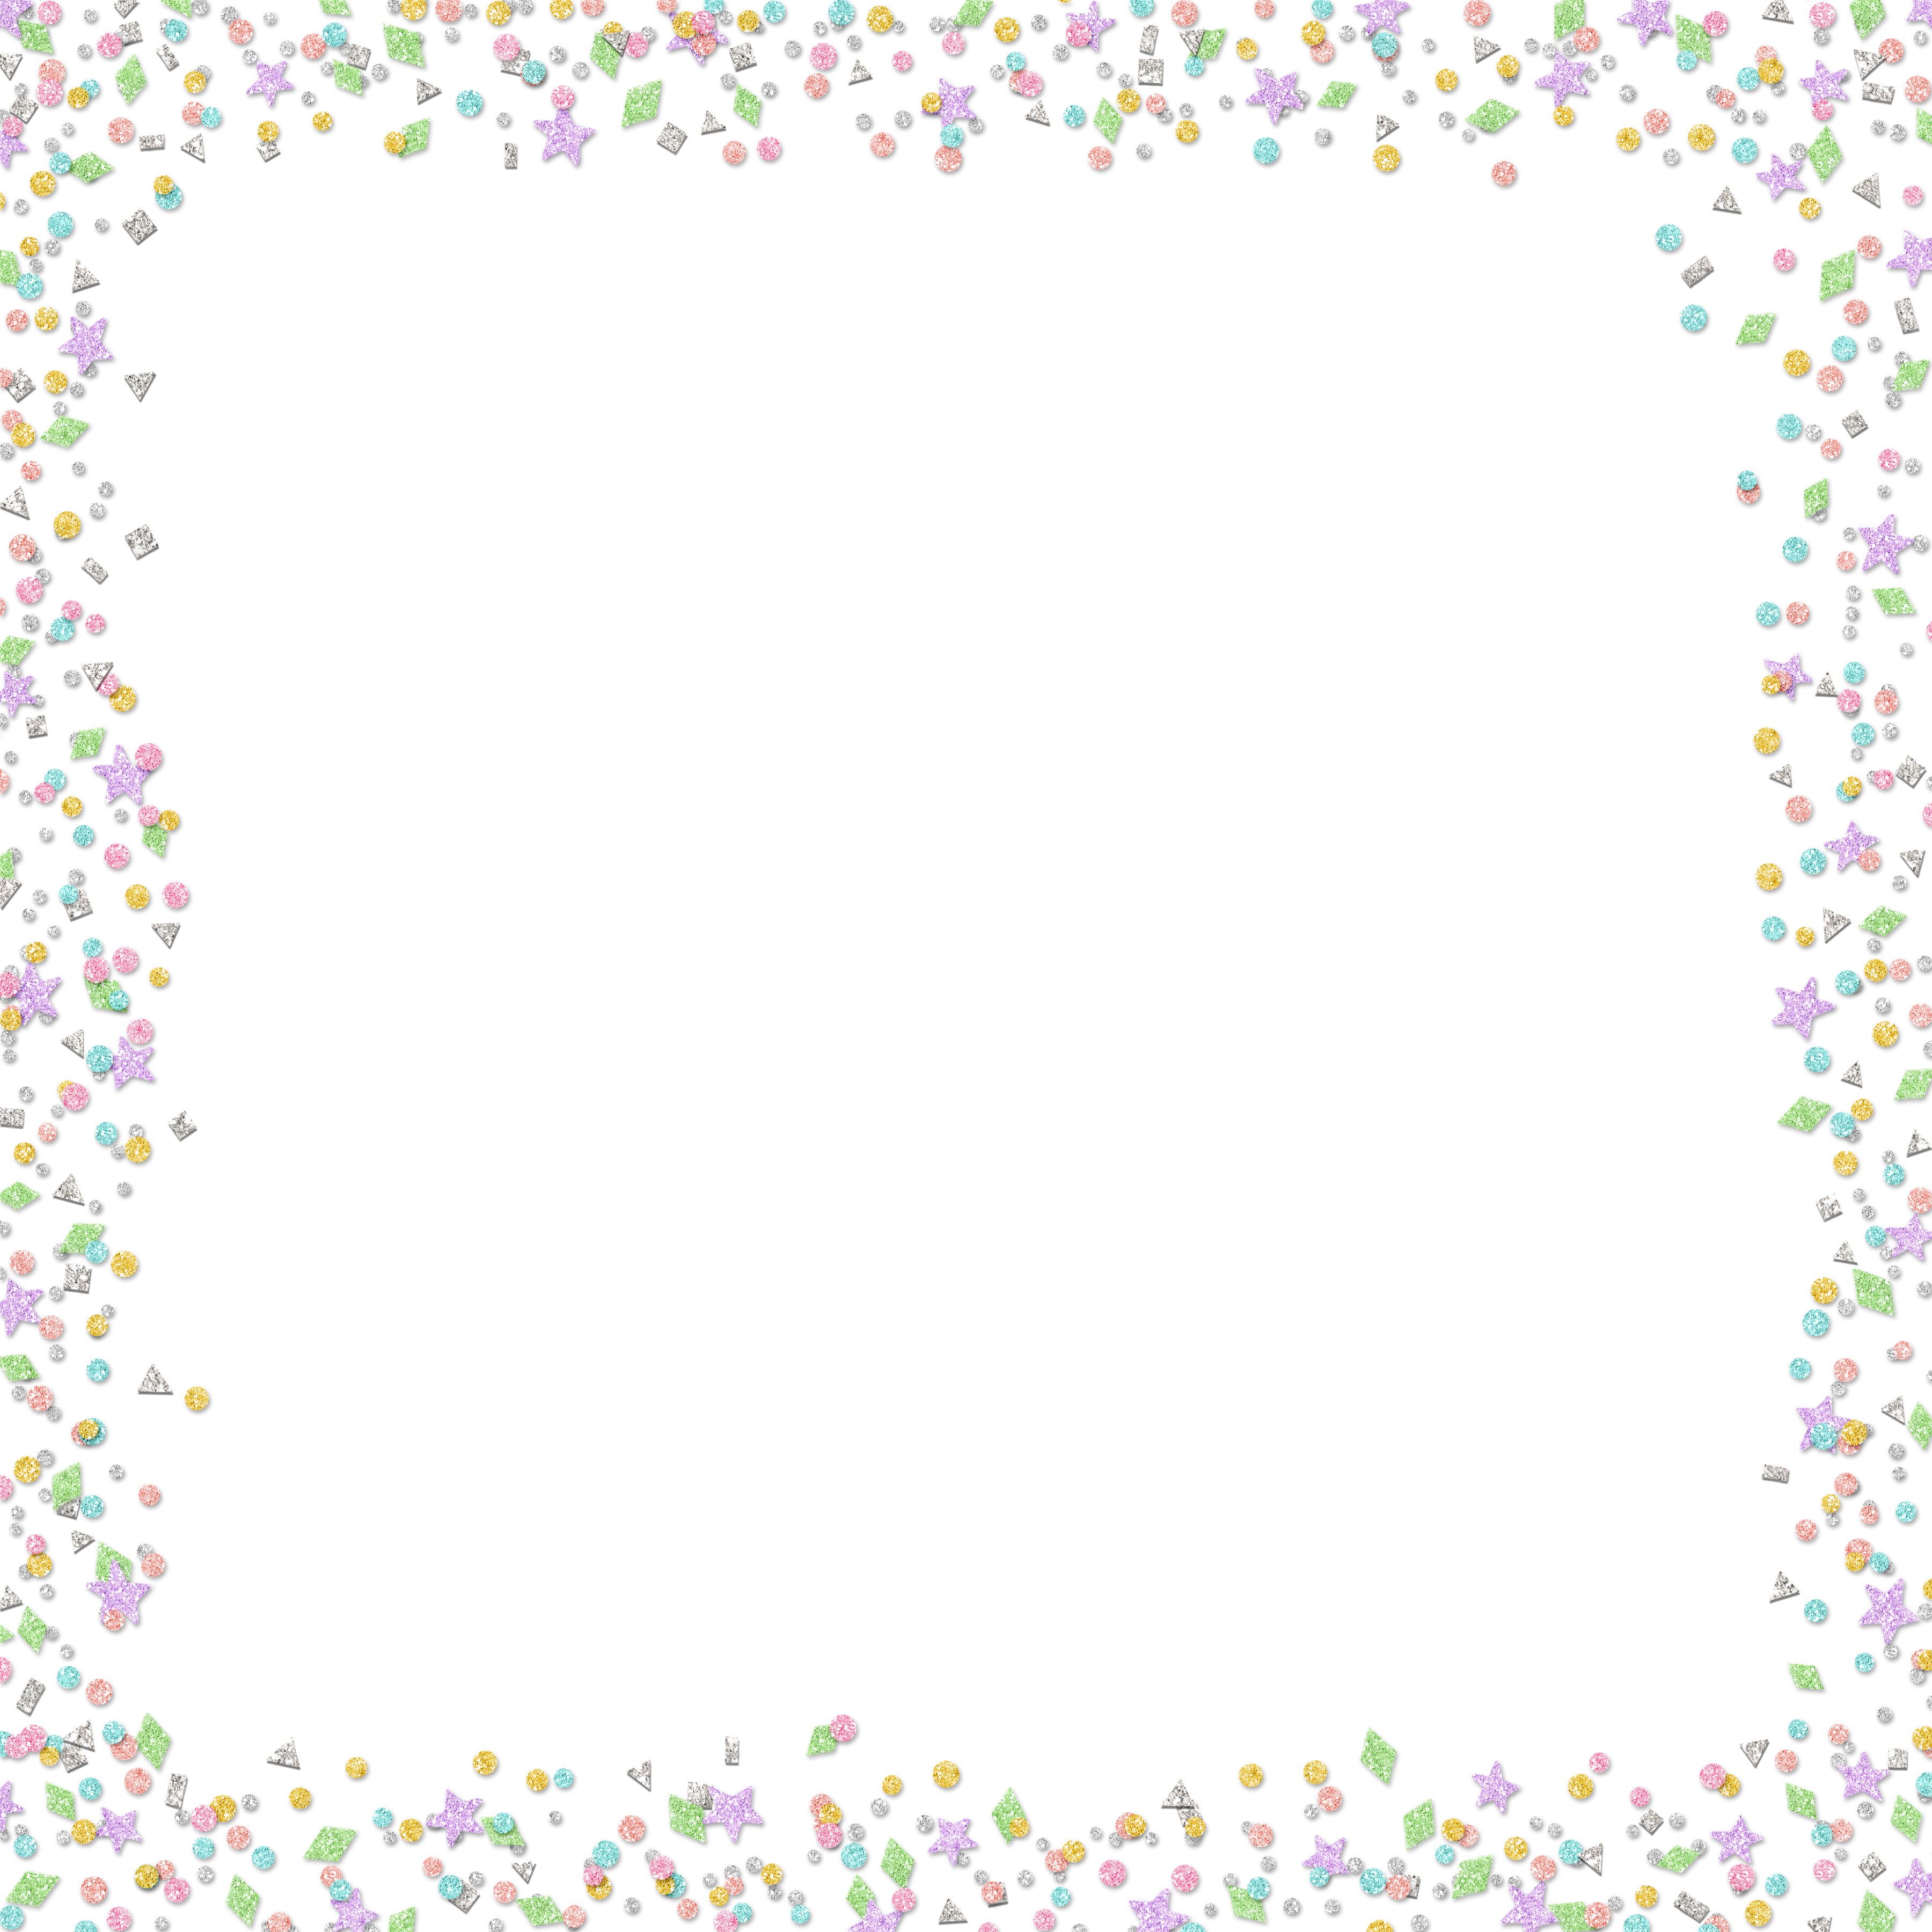 for free download. Glitter border png